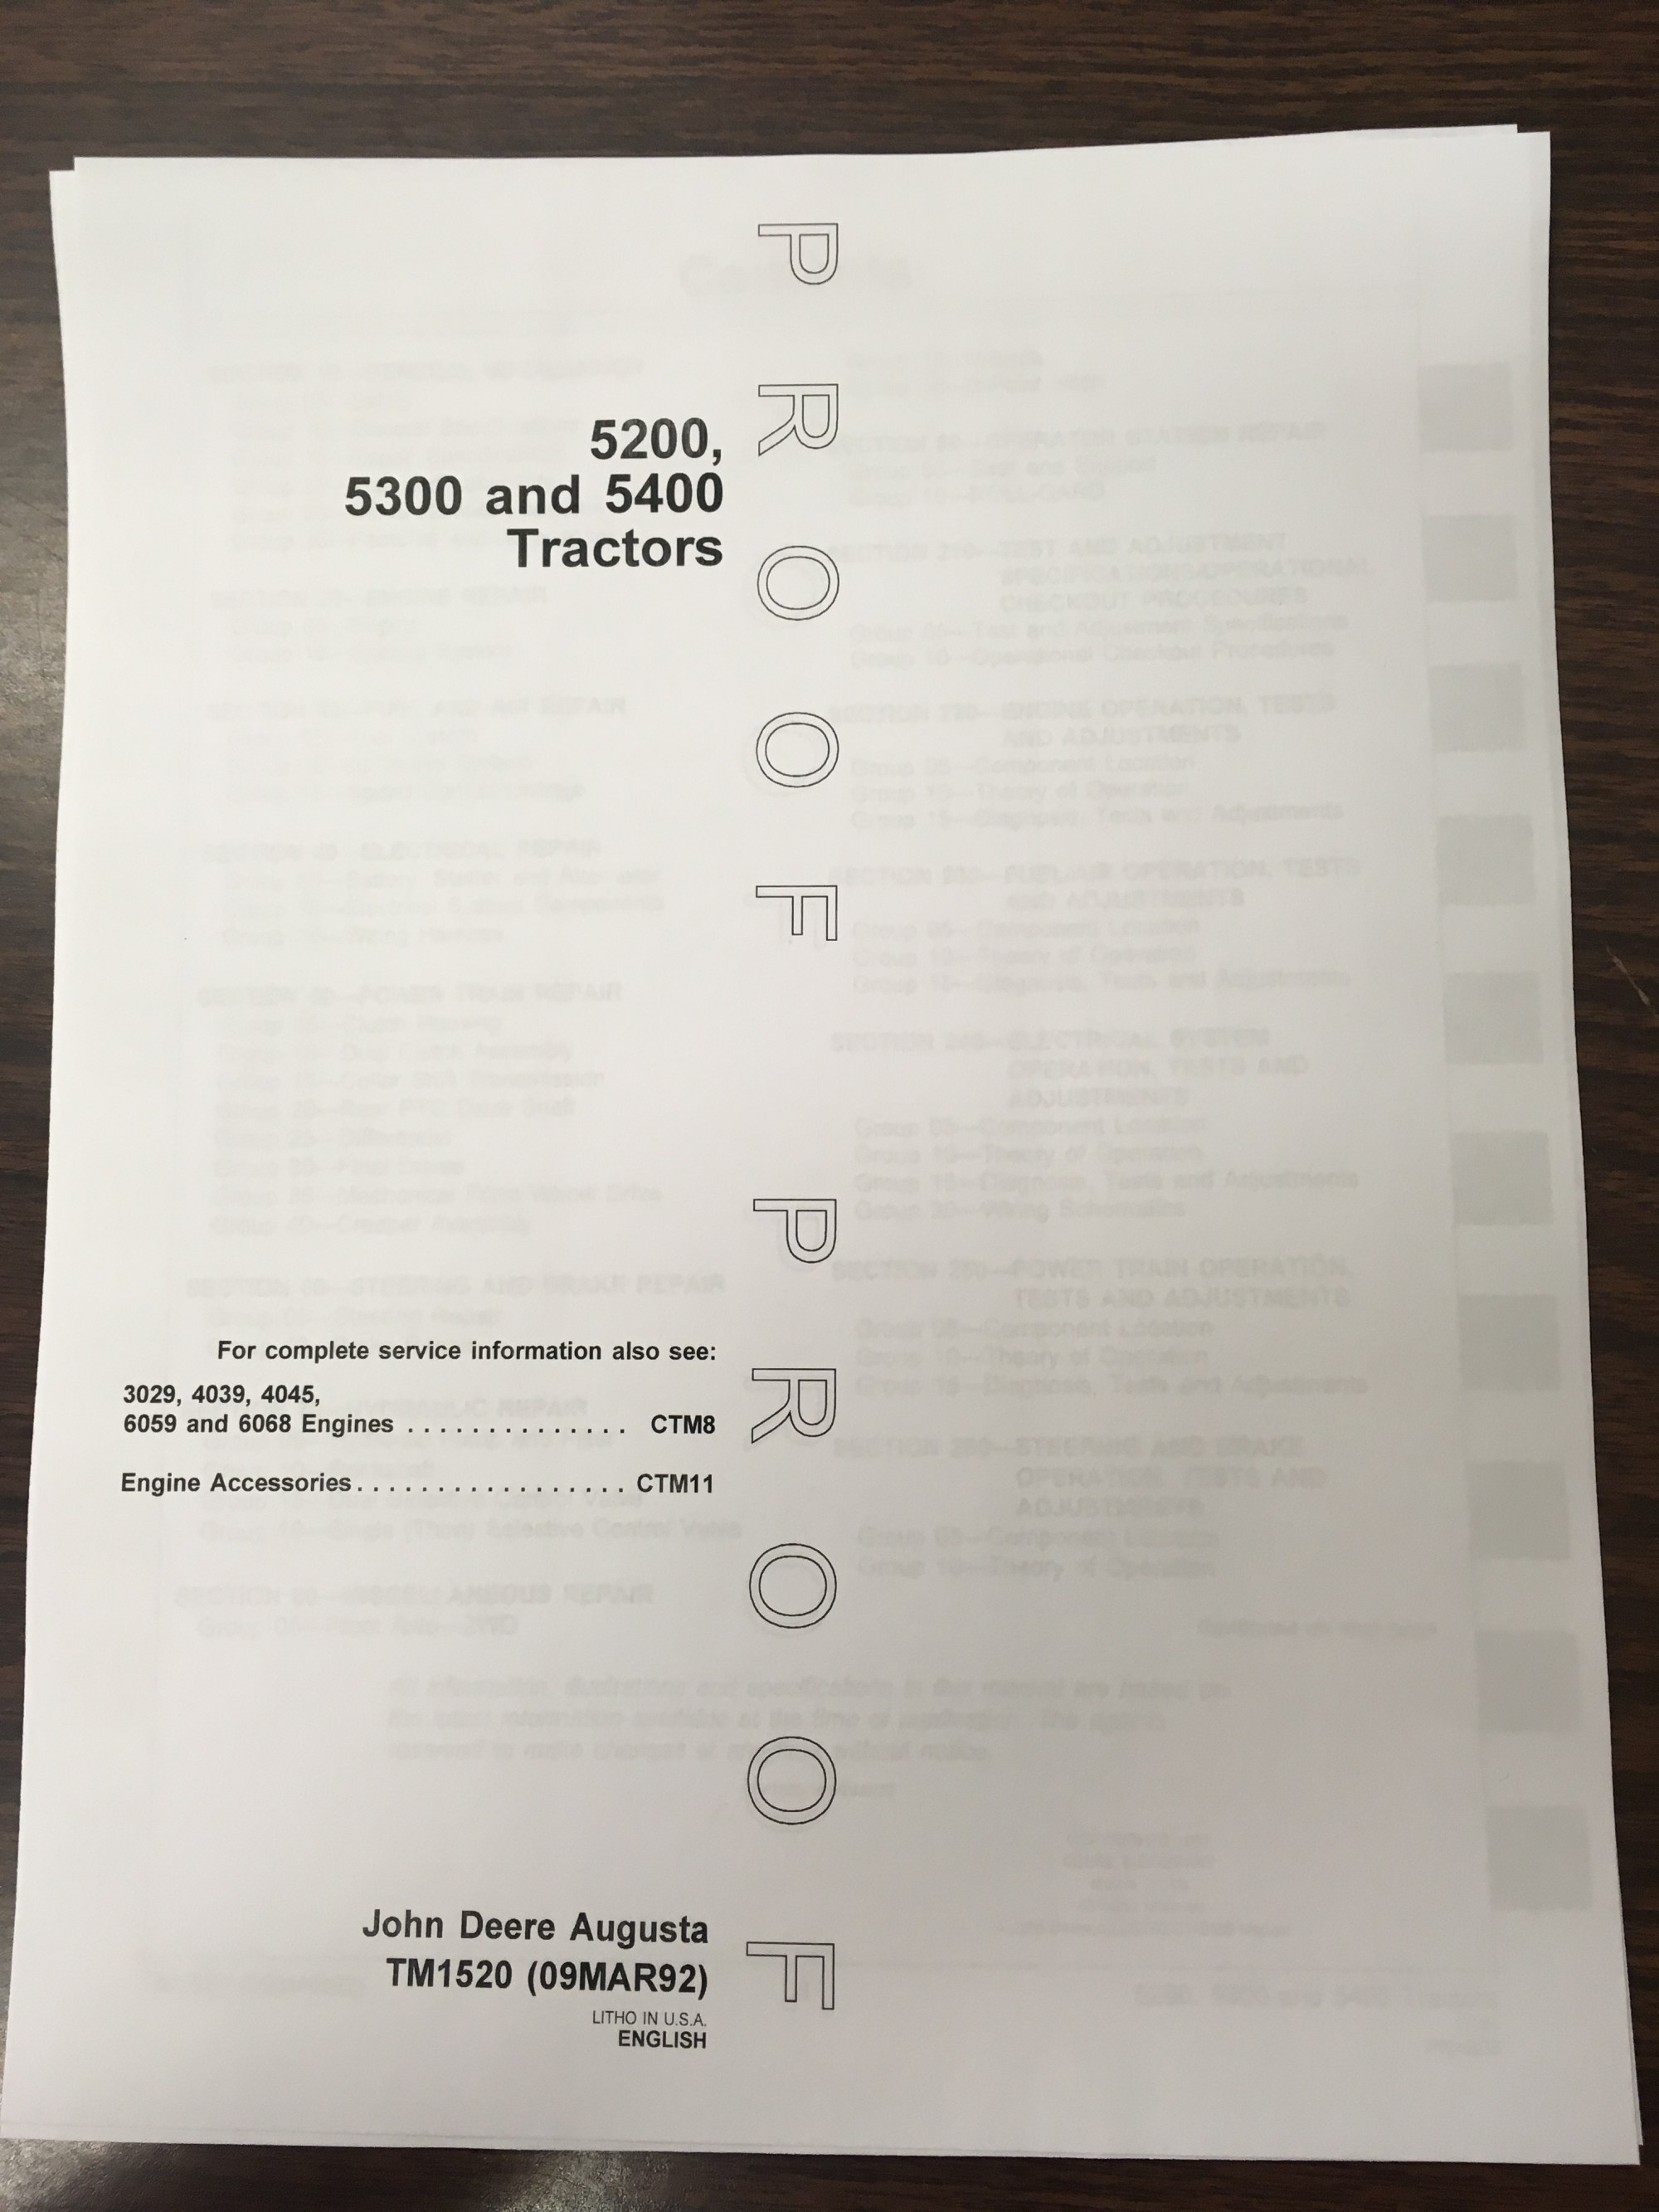 hight resolution of john deere 5200 5300 5400 tractors technical manual proof edition jd tm1520 book finney equipment and parts